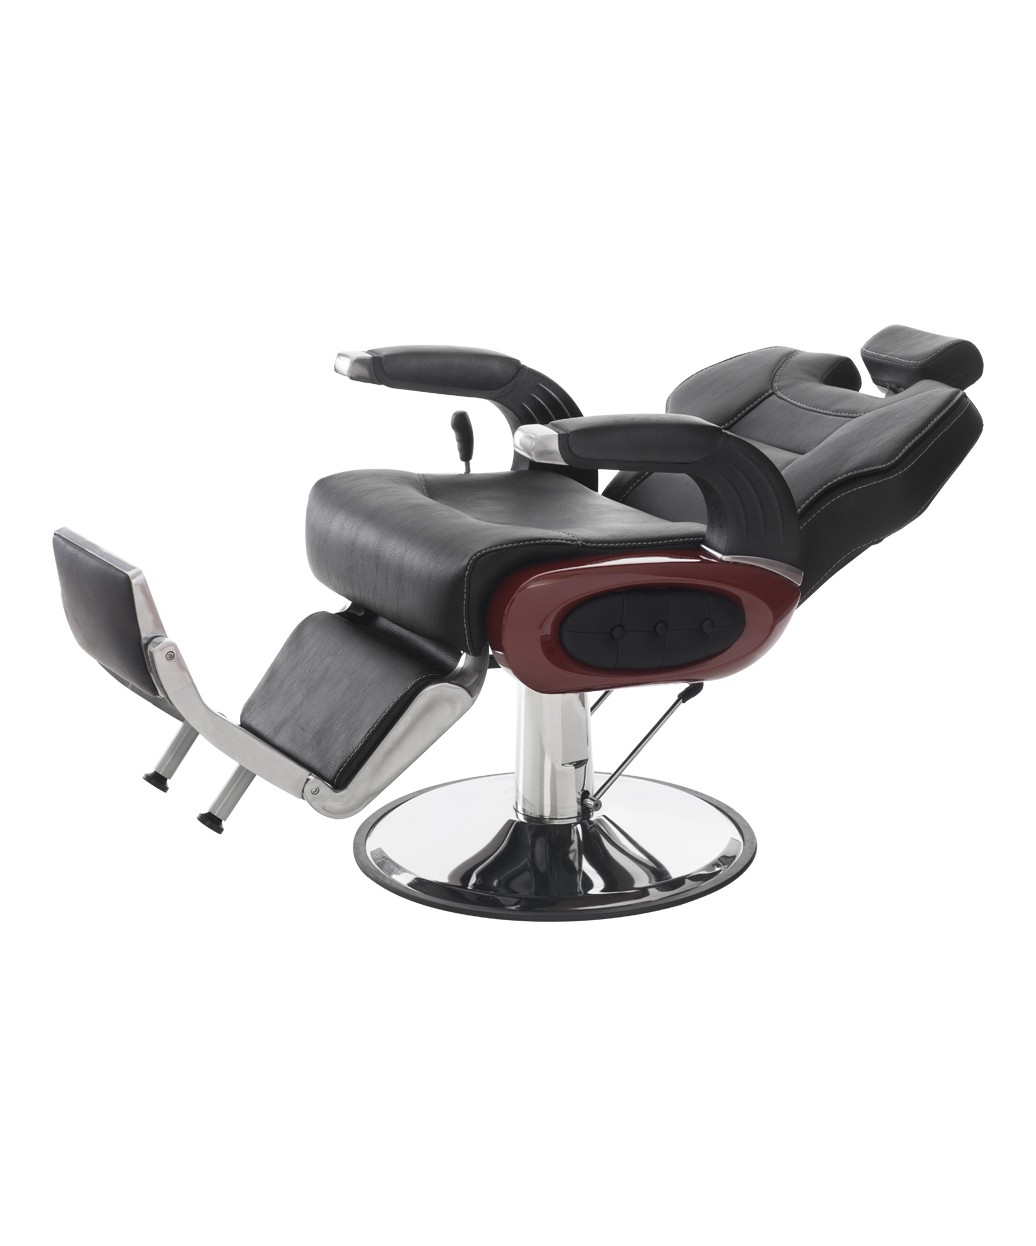 Carver Professional Barber Chair